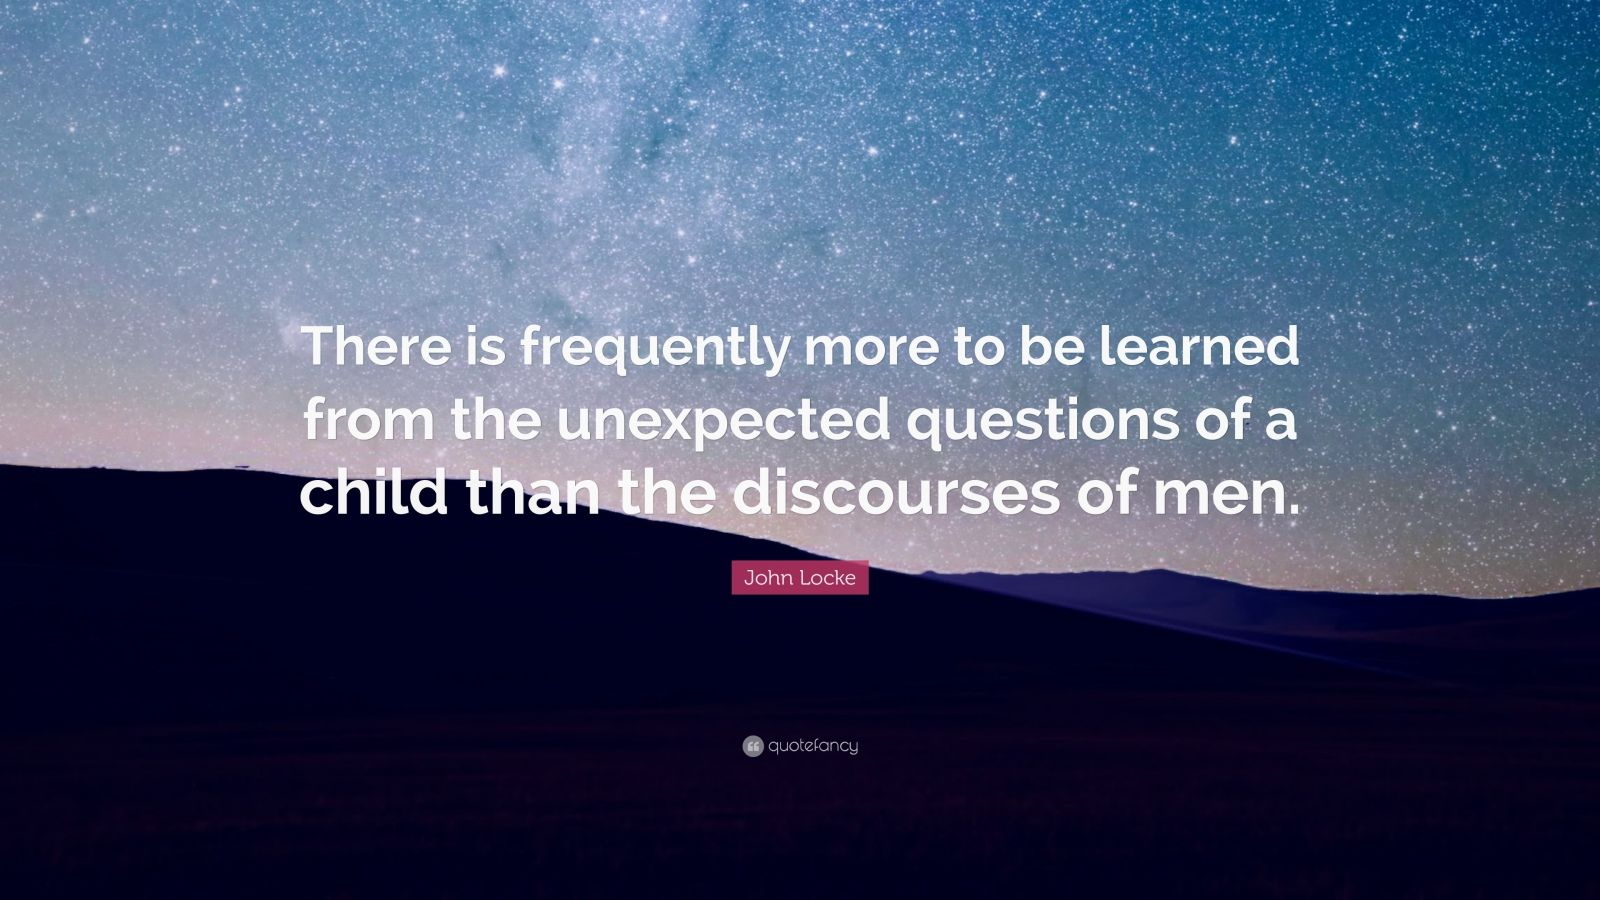 """John Locke Quote: """"There is frequently more to be learned from the unexpected questions of a child than the discourses of men."""""""